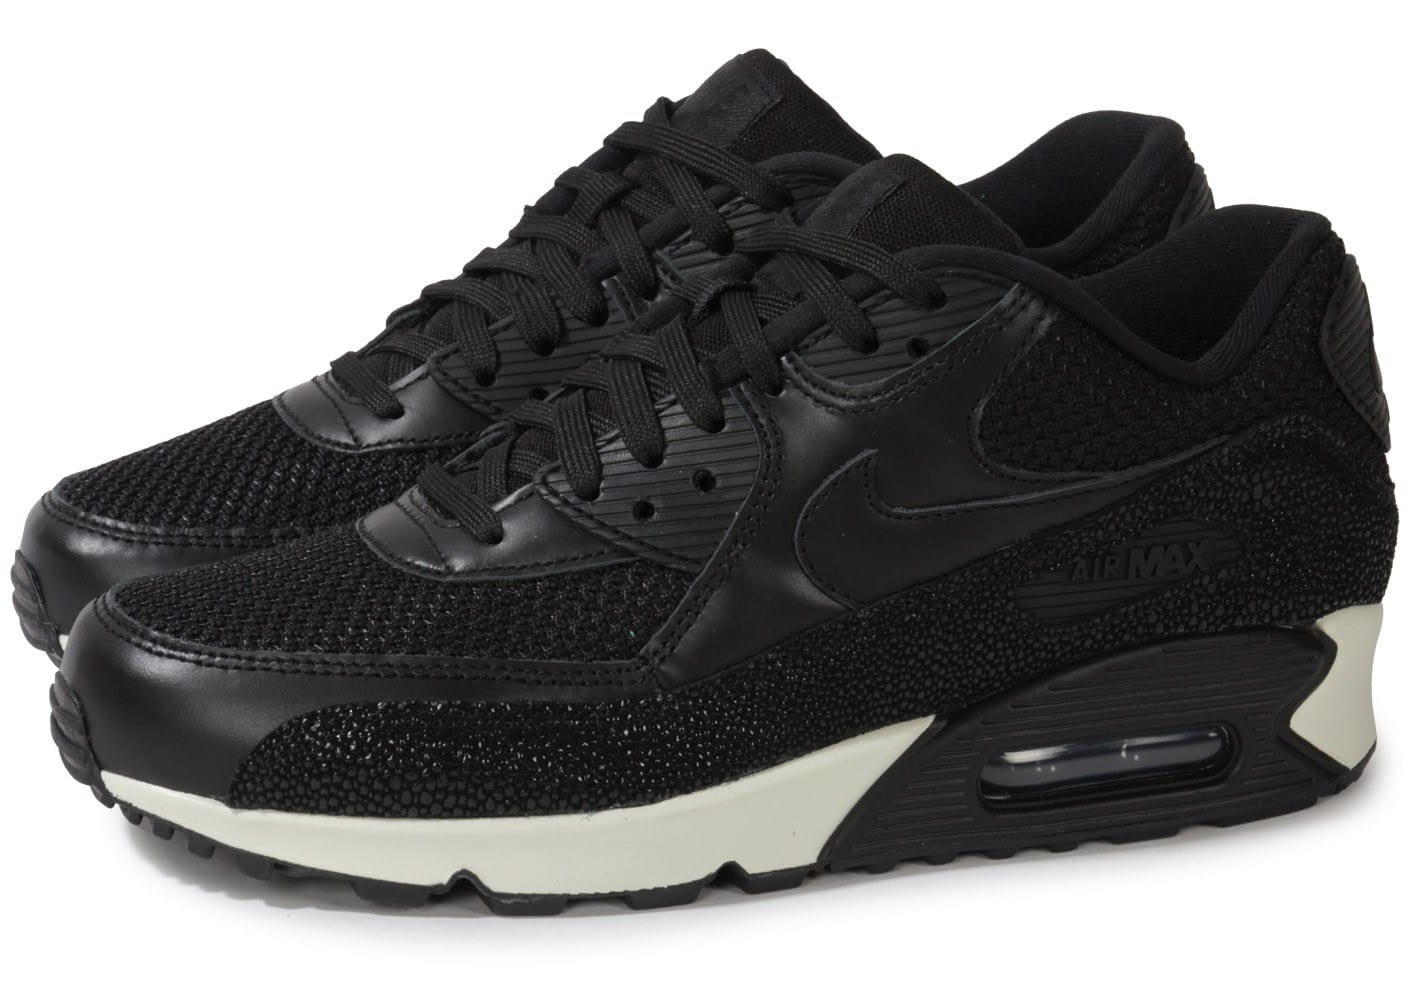 nike air max 90 leather stingray noire chaussures homme chausport. Black Bedroom Furniture Sets. Home Design Ideas